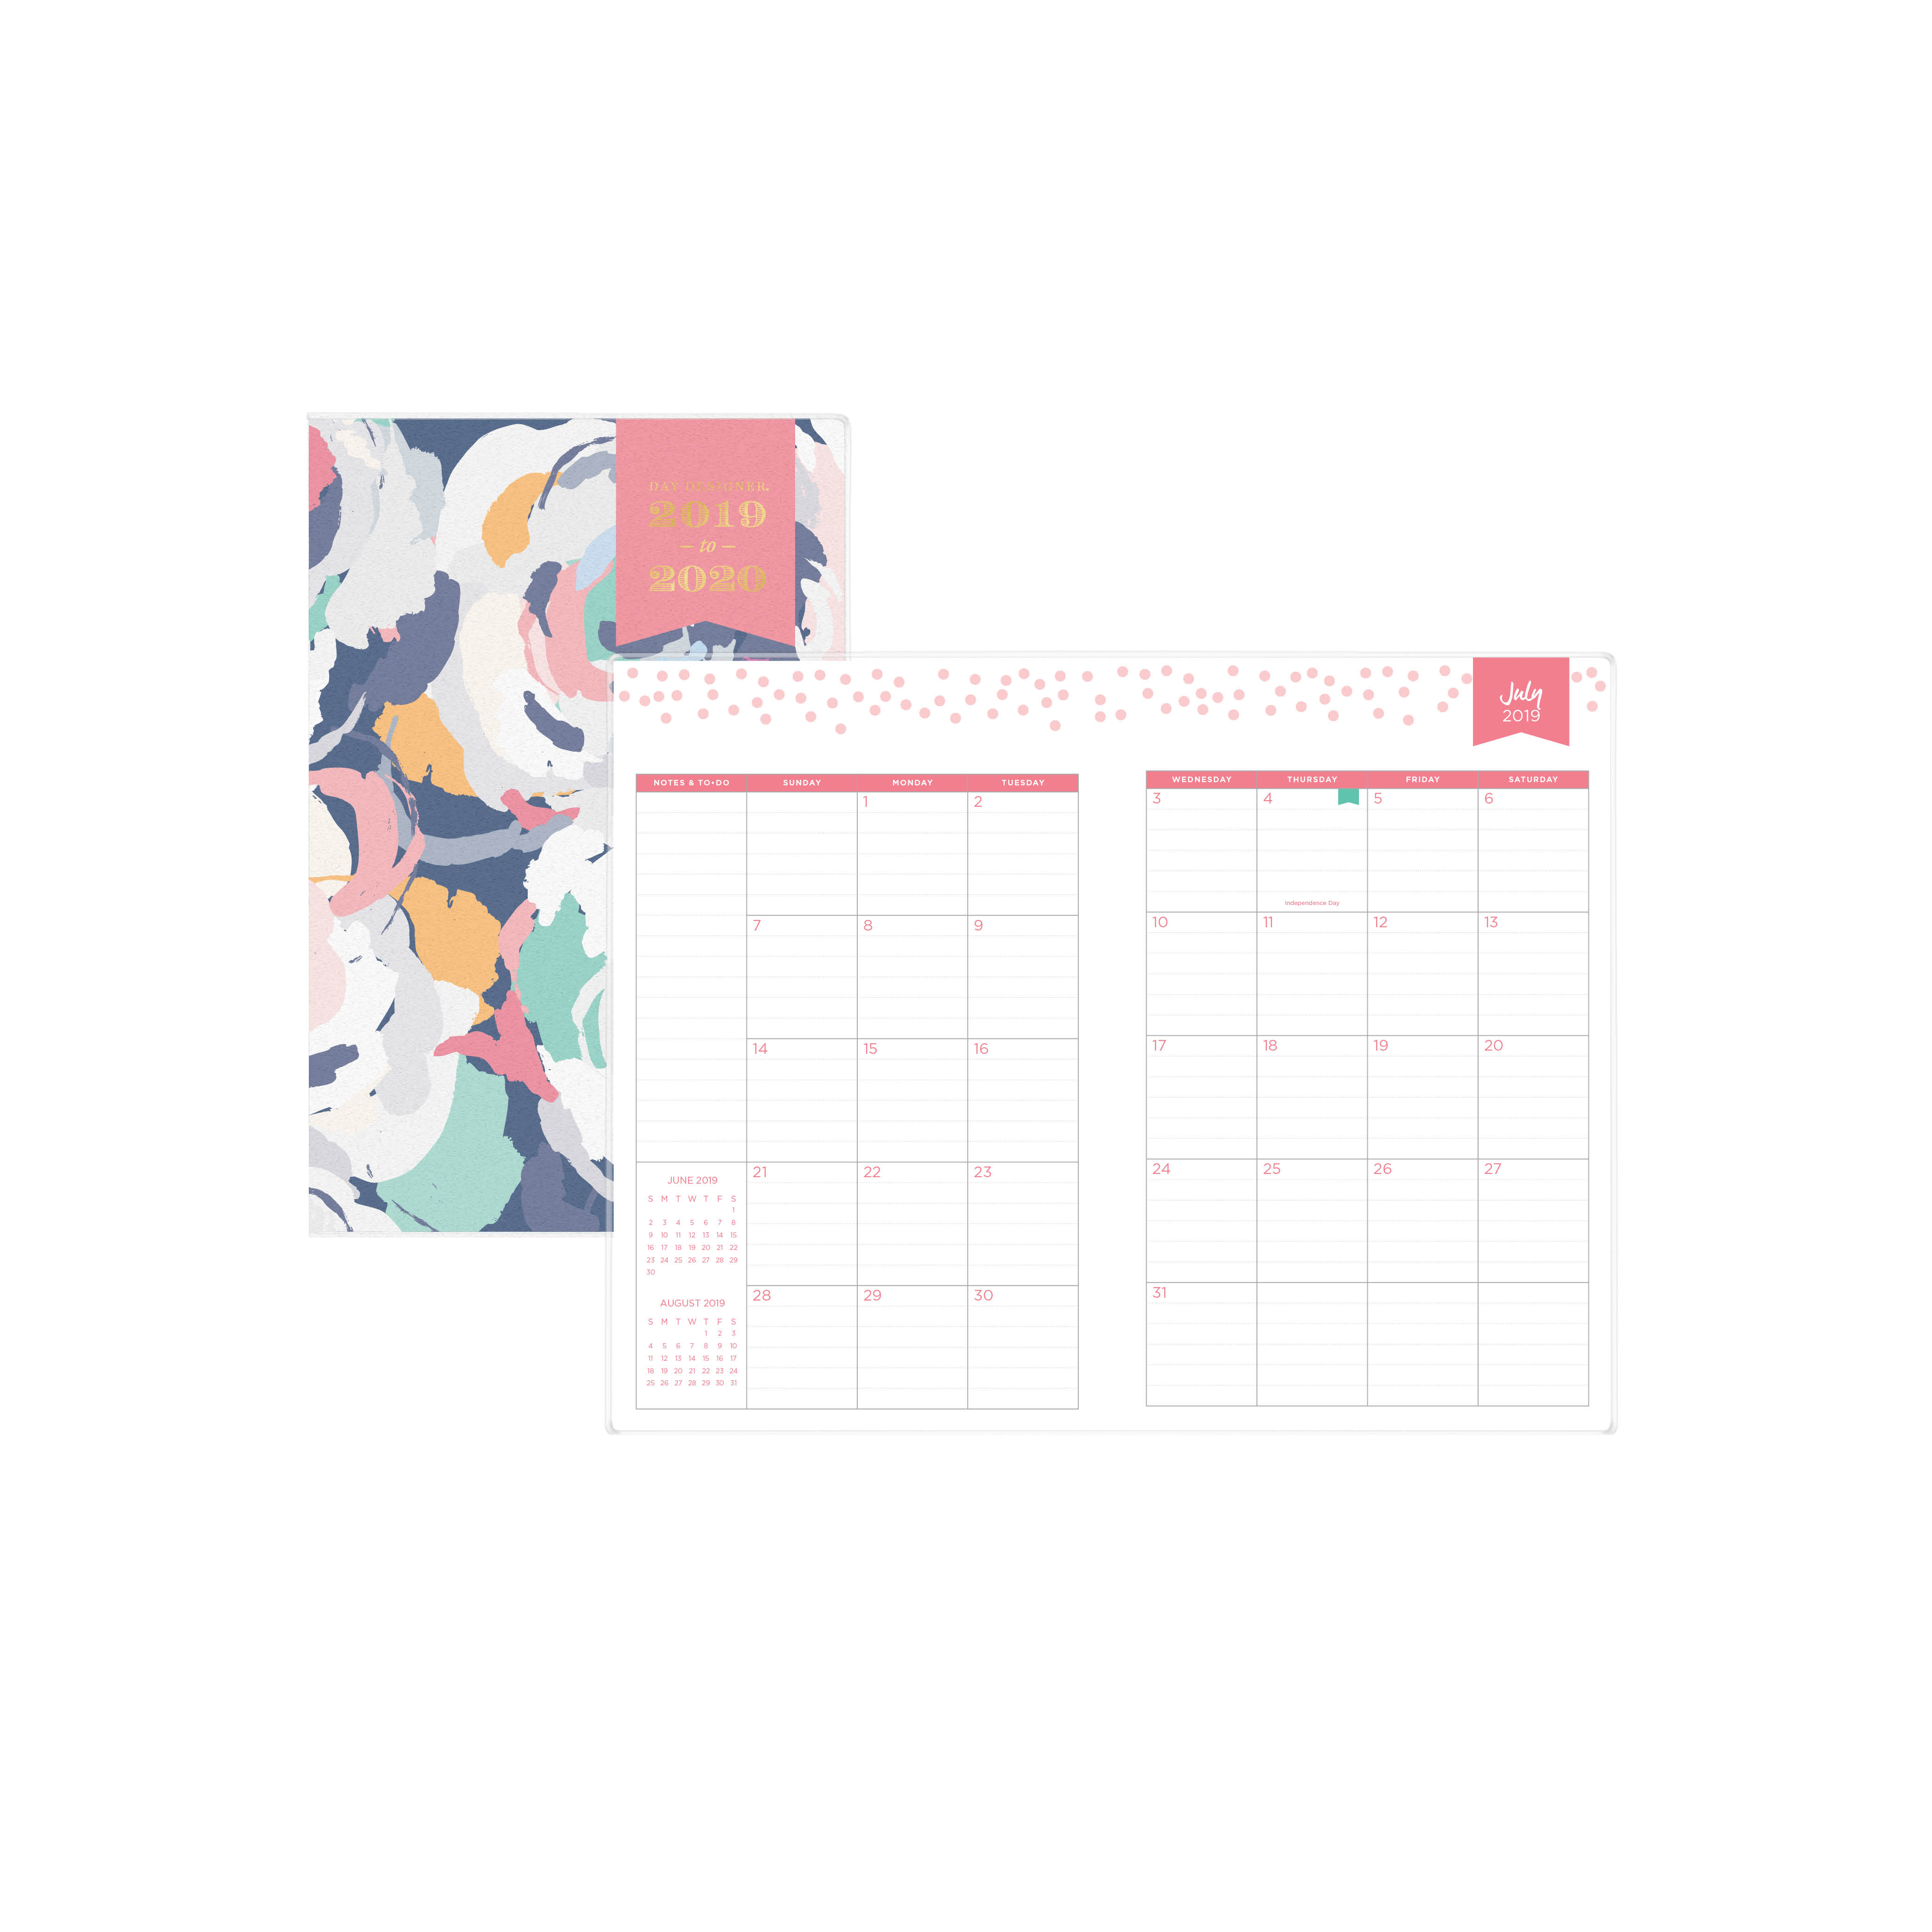 "Blue Sky 5.5"" X 8.5"" Monthly Planner, July 2019-June 2020 - Walmart with regard to 2020 Calendar For 5.5 X 8.5"